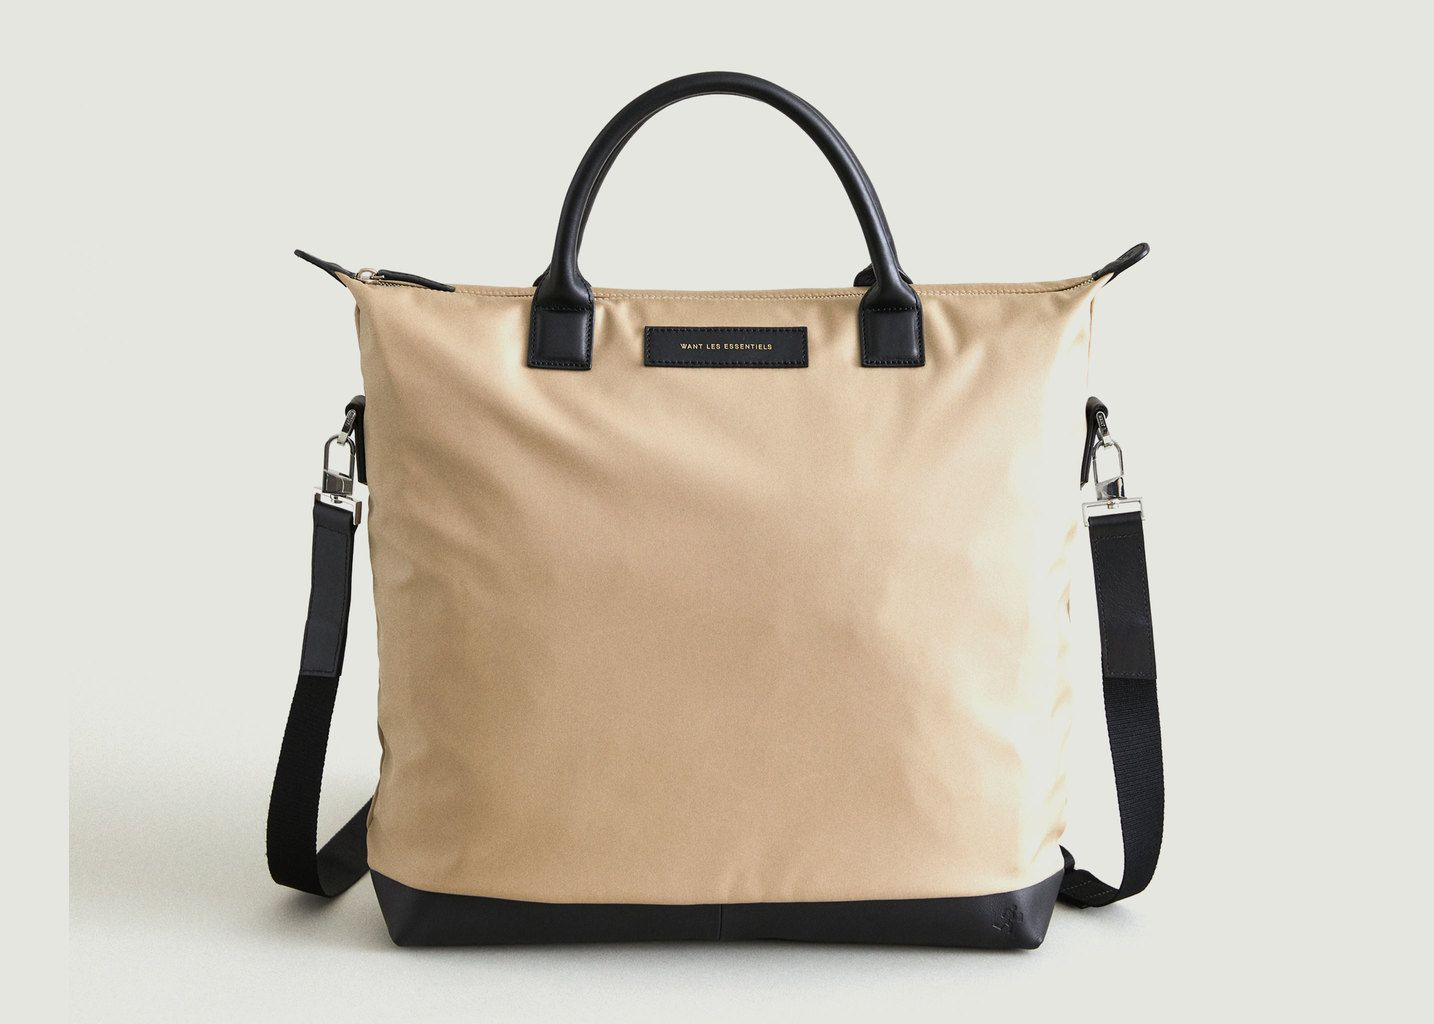 Tote O'Hare 2.0 - Want Les Essentiels